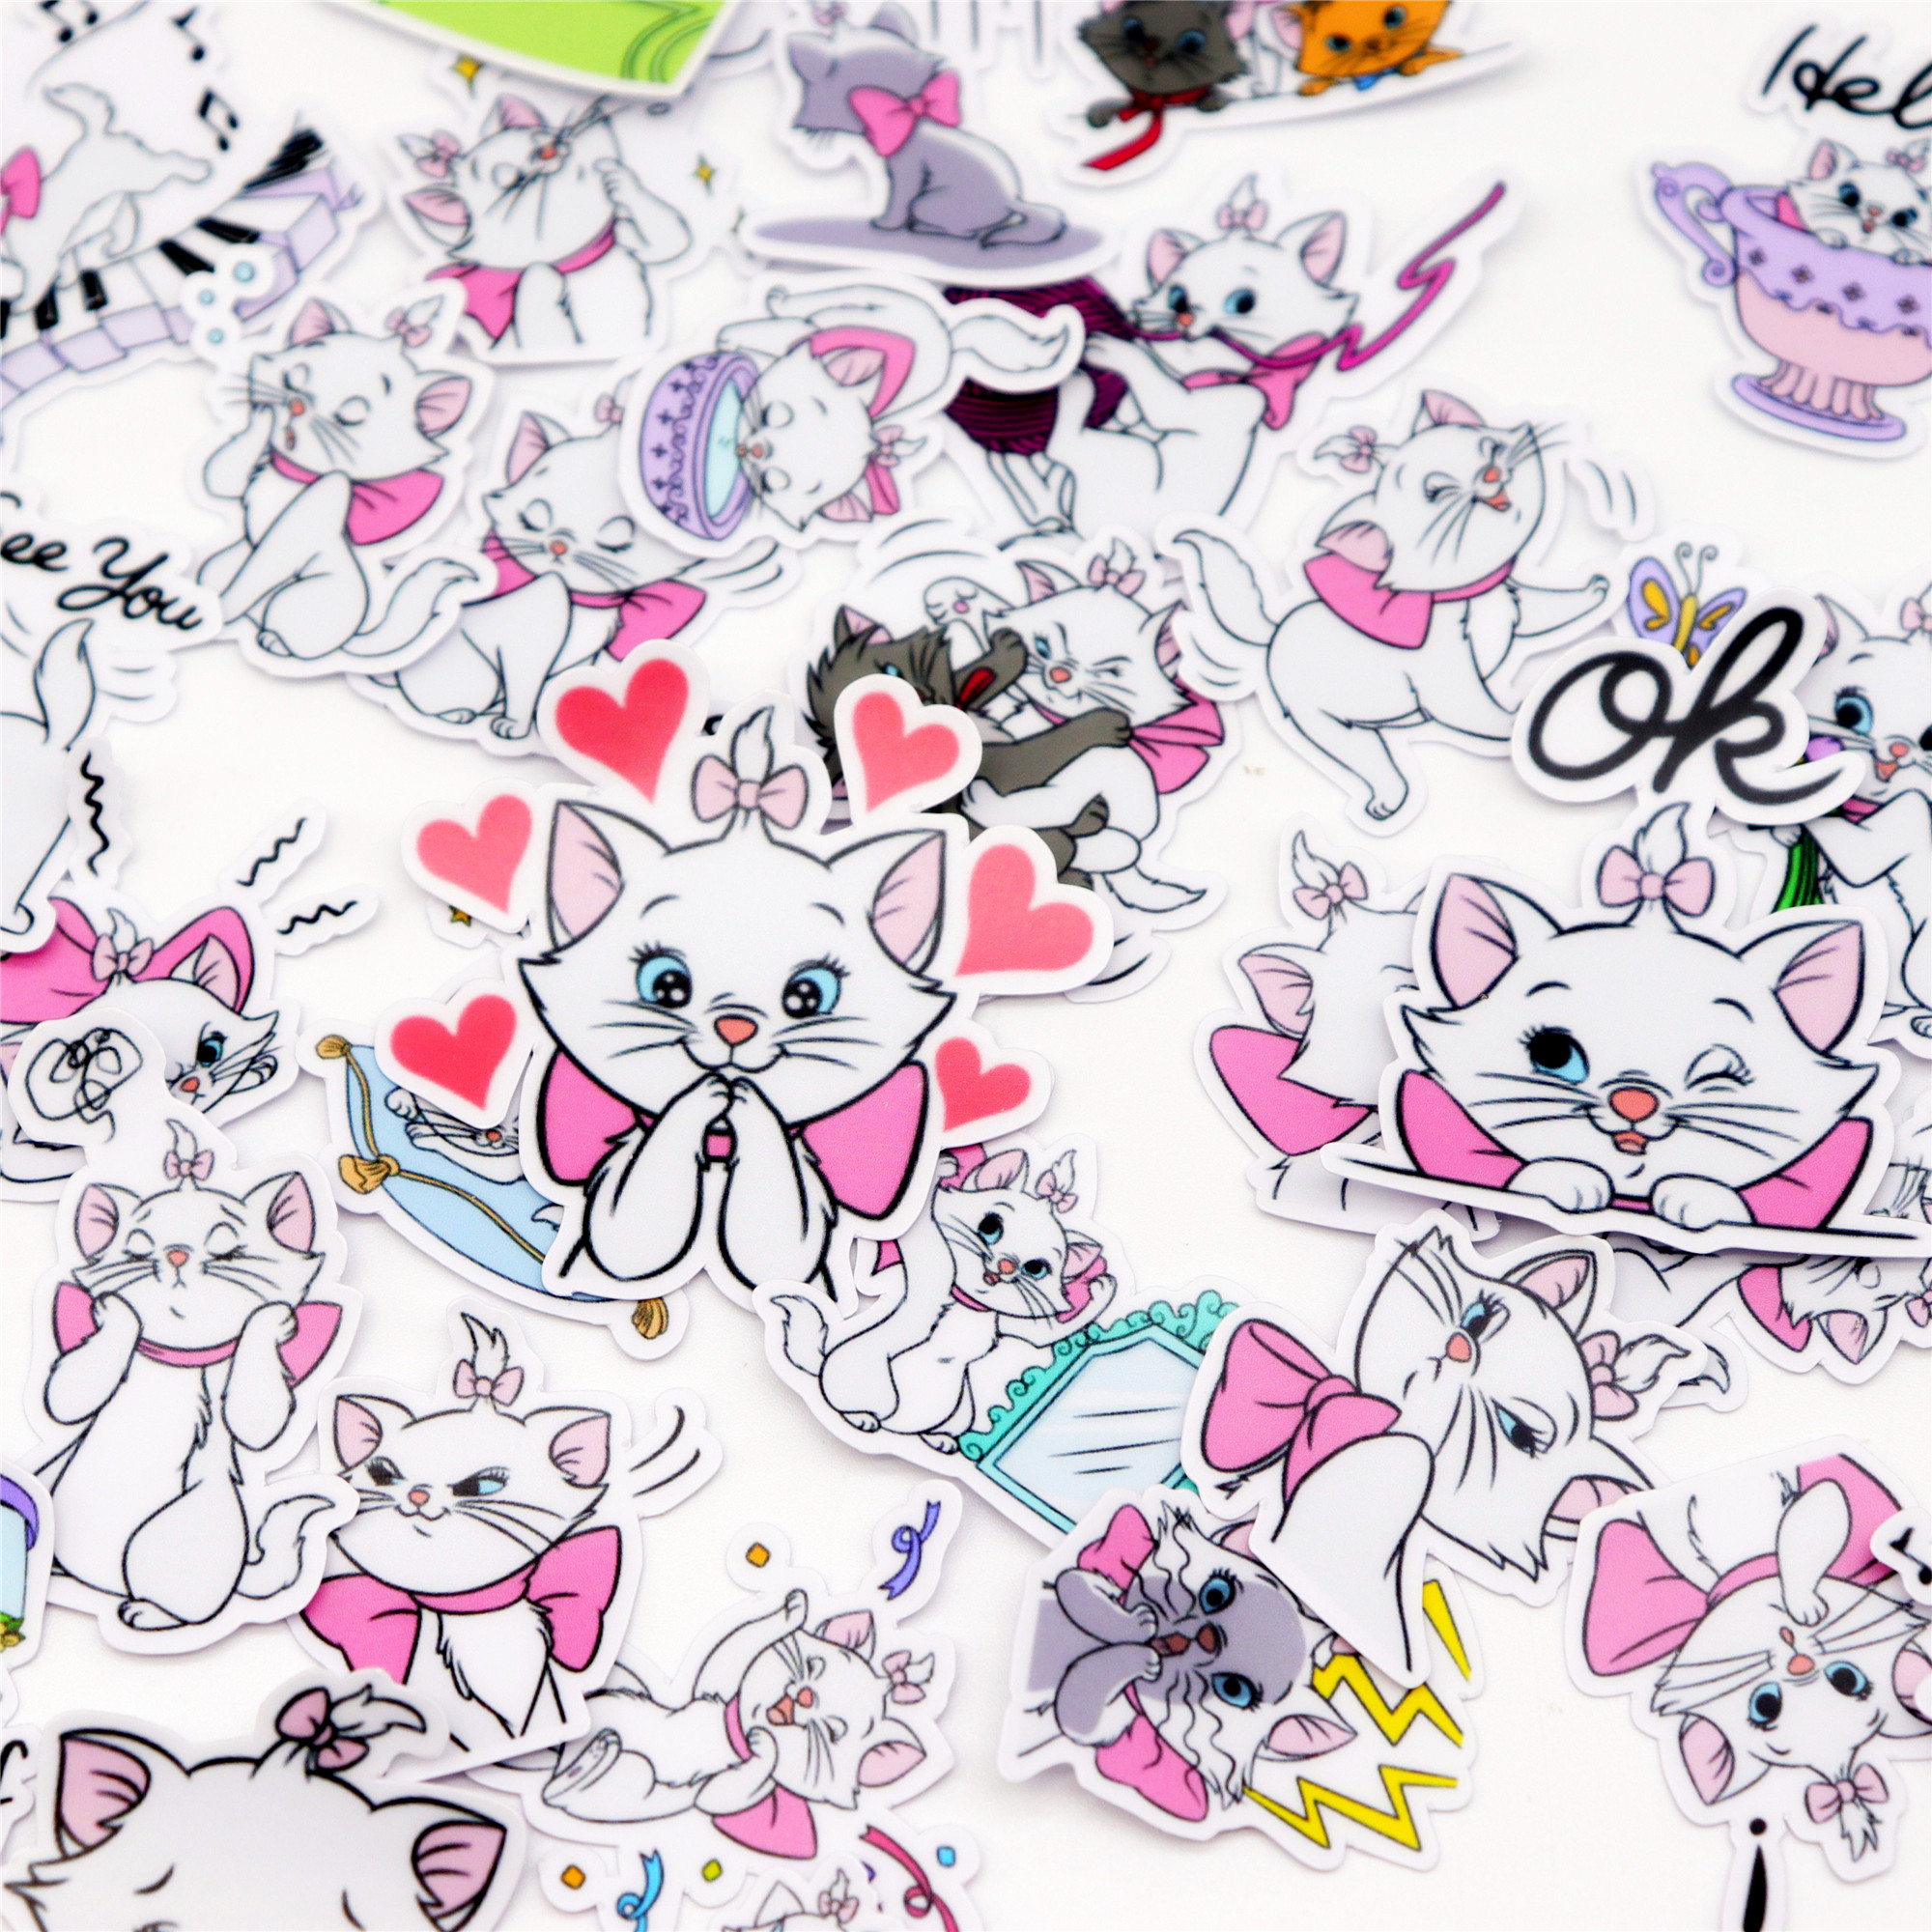 40pcs Creative Kawaii Self-made Cat Stickers/scrapbooking Stickers /decorative /DIY Photo Albums Waterproof/Notebook Diary